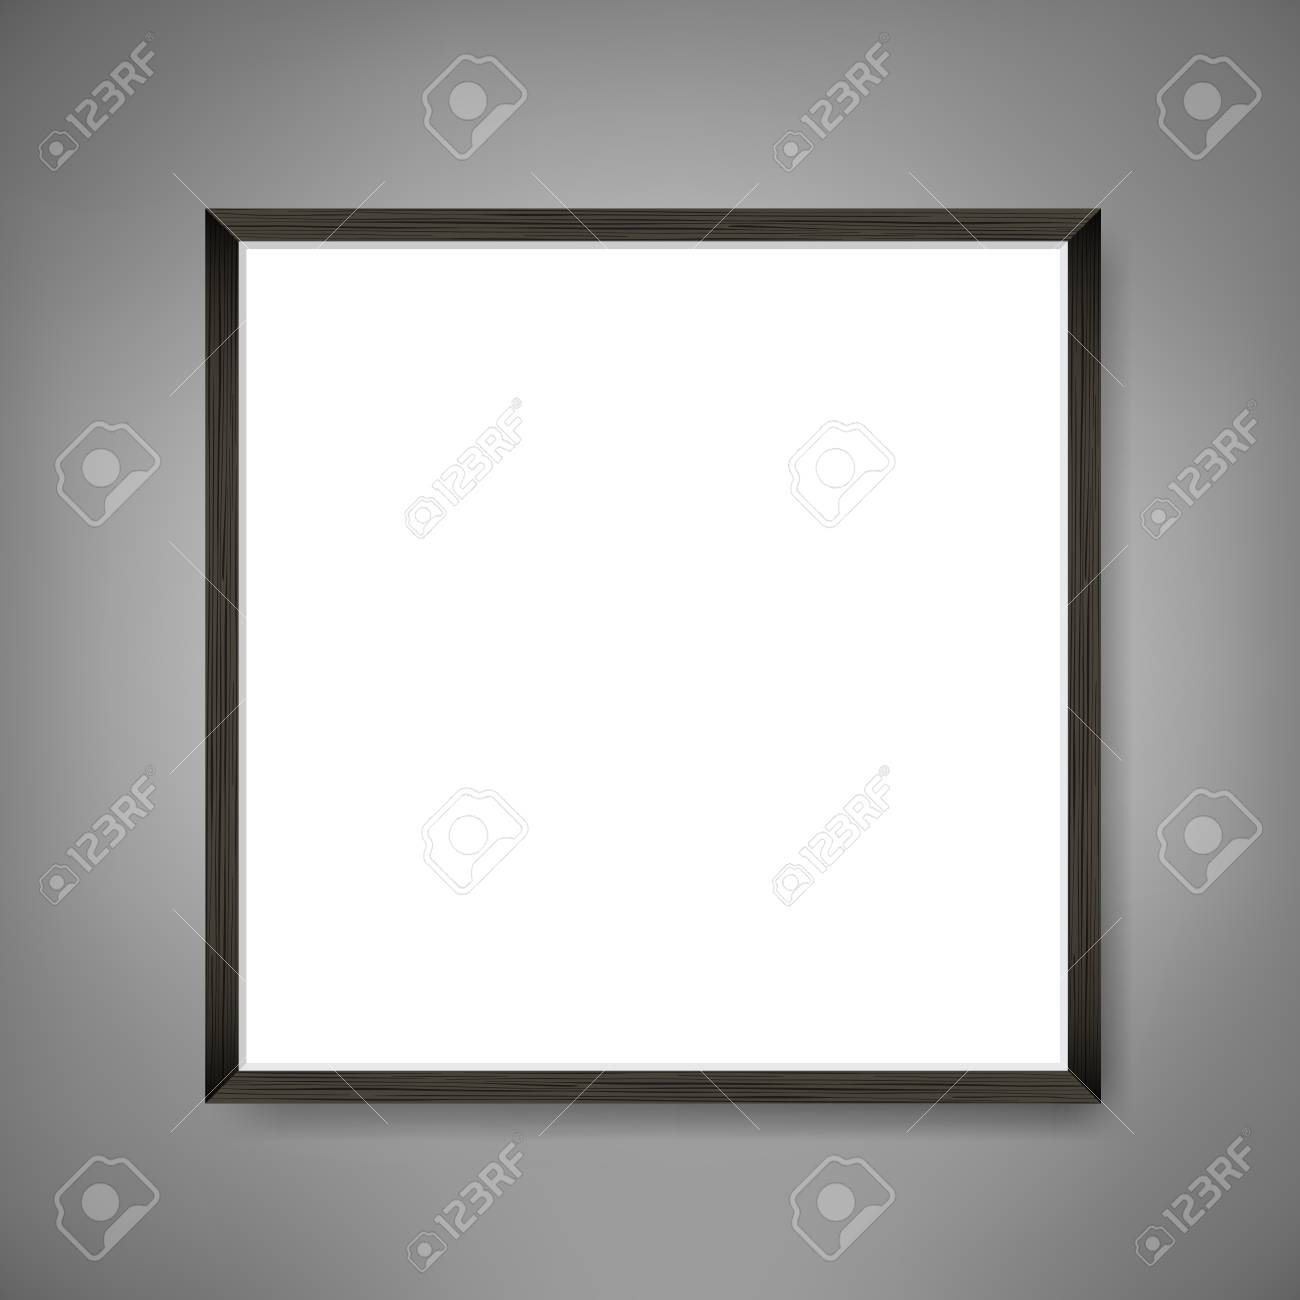 Square Blank picture frame template. Realistic black frame on grey wall for photo or poster. - 102147431